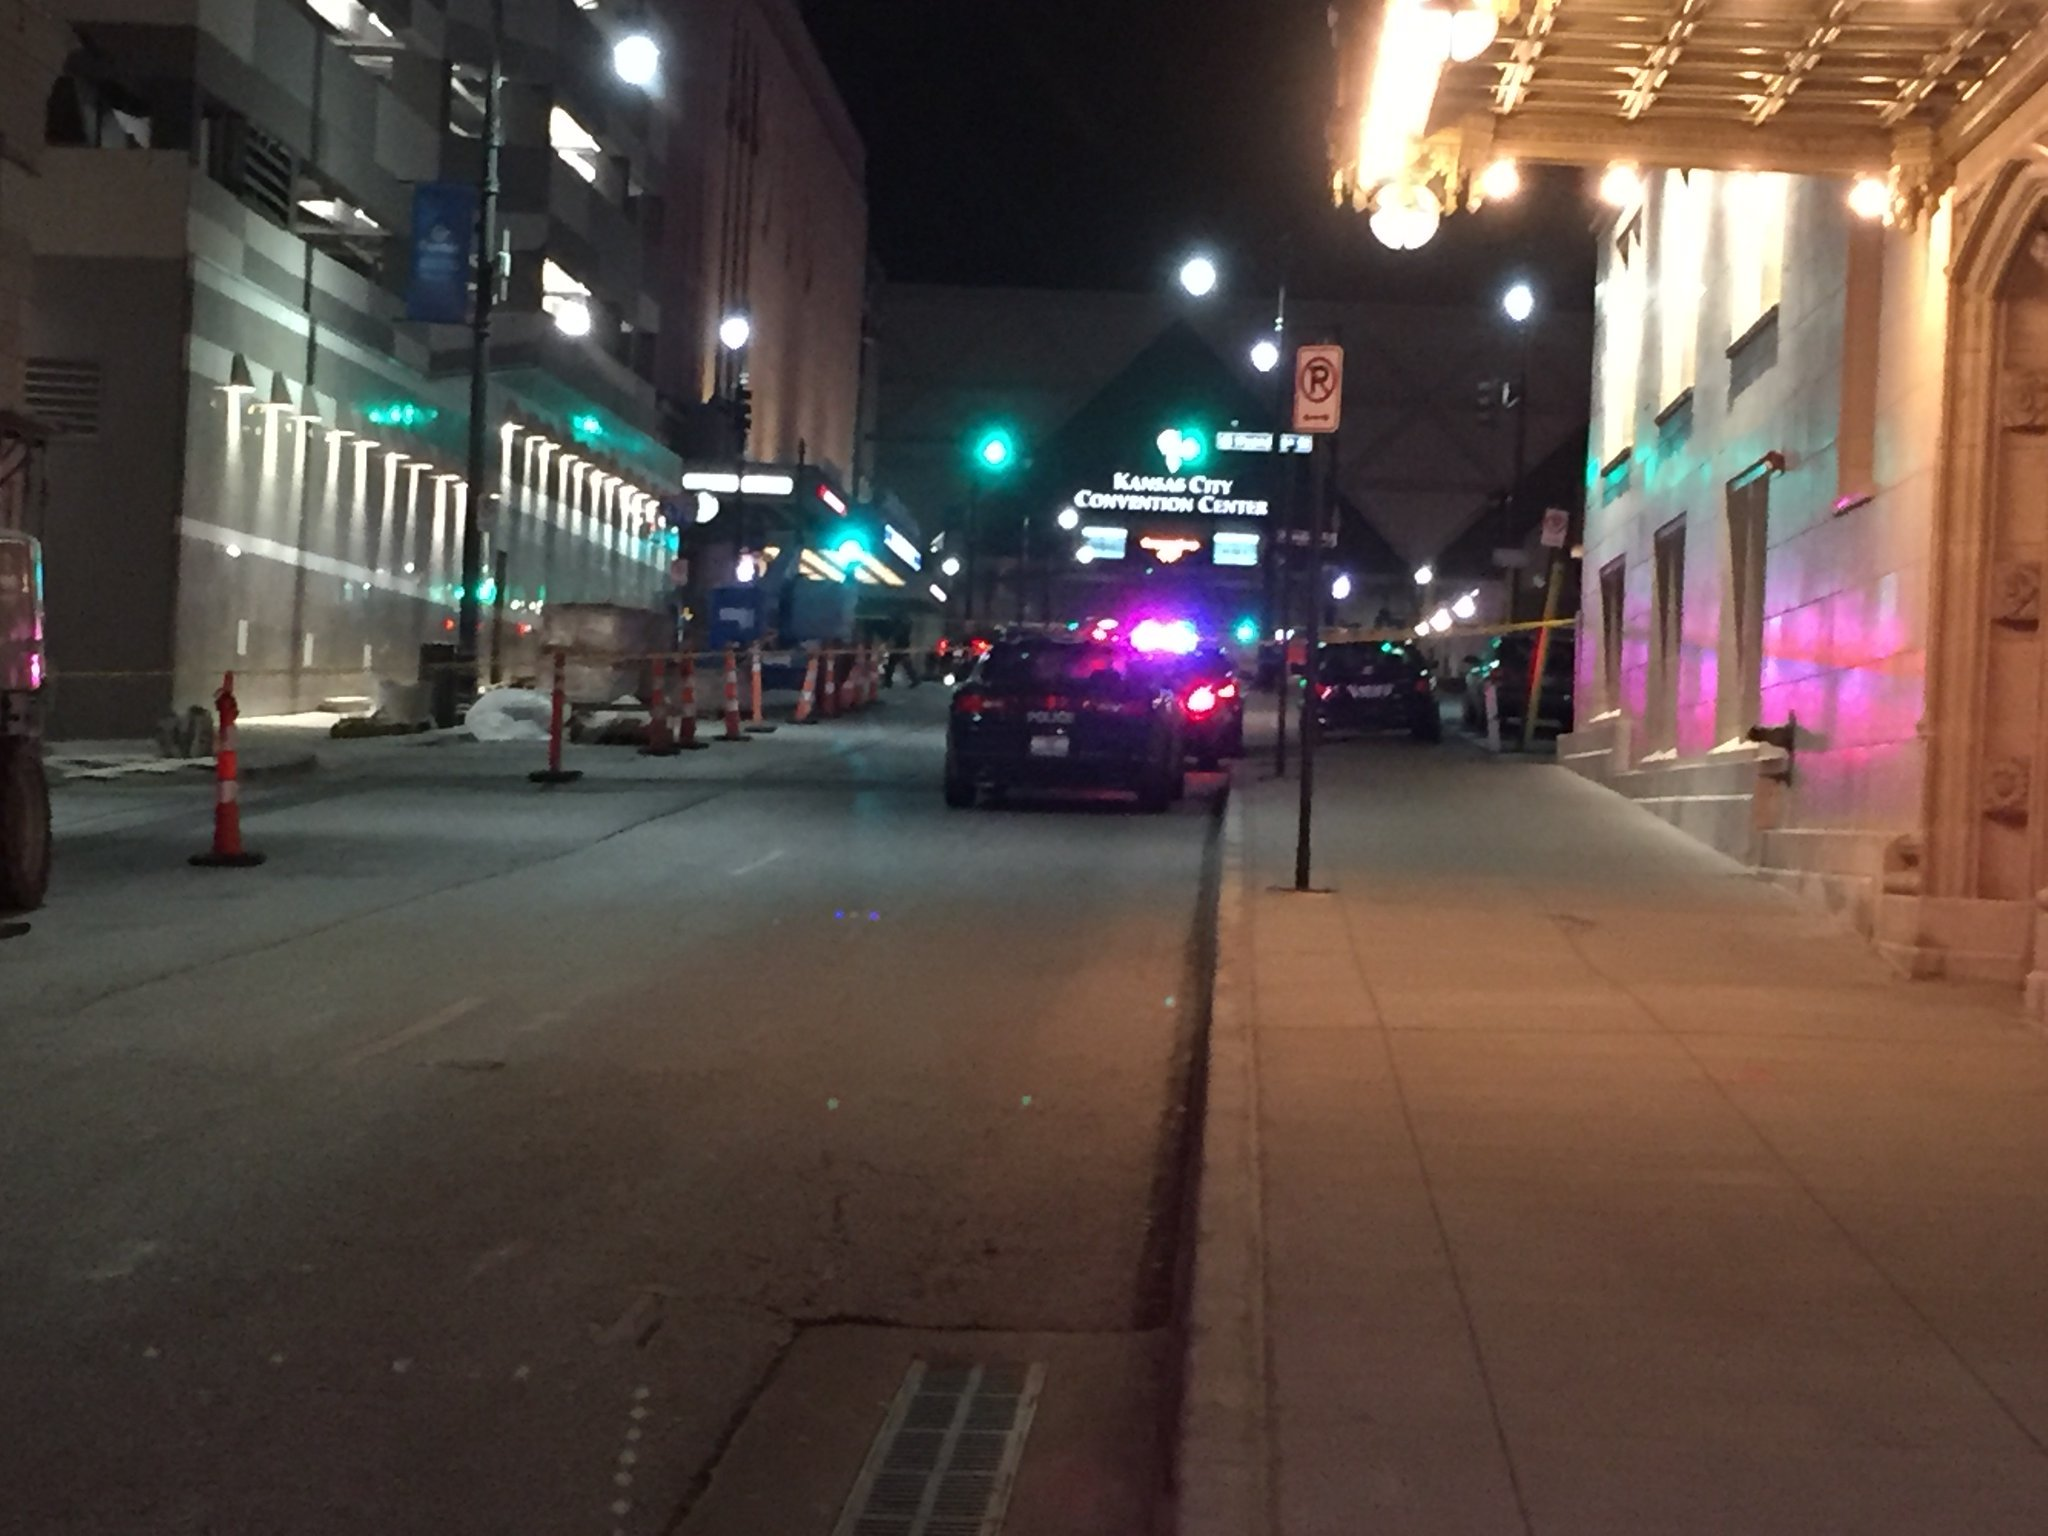 One person suffered non-life threatening injuries following a shooting outside of the Crowne Plaza. (KCTV5)